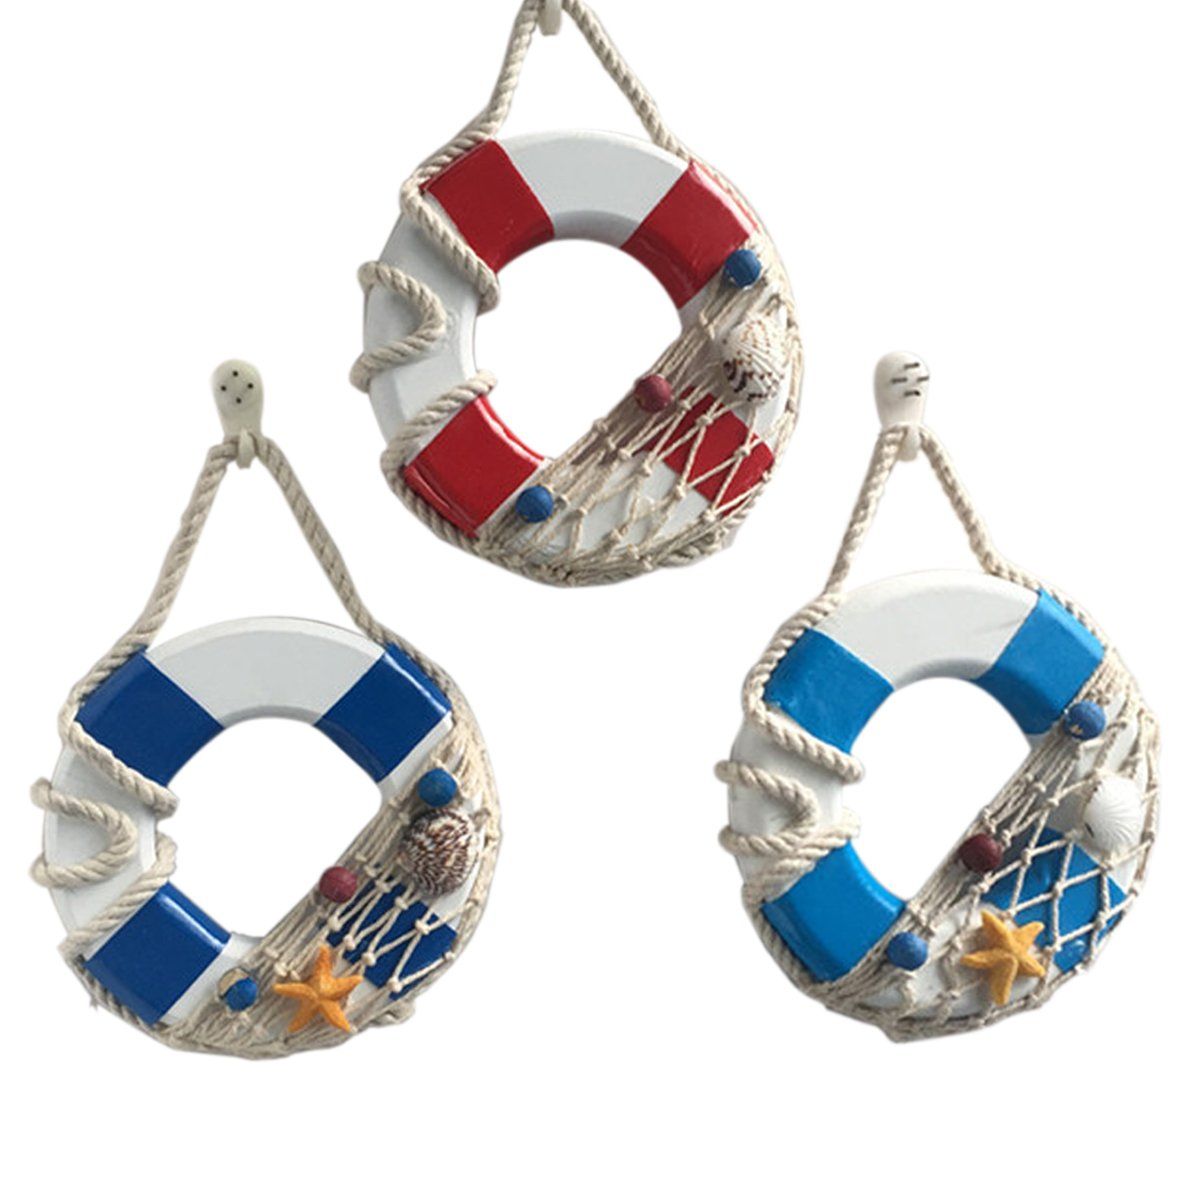 VORCOOL 3pcs Mediterranean Style Creative Wooden Mini Life Buoy Ring Shape Door and Wall Hanging Ornaments Decoration Arts and Crafts Home Store Hotel Pendant Decorations (Red, Light Blue, Dark Blue)